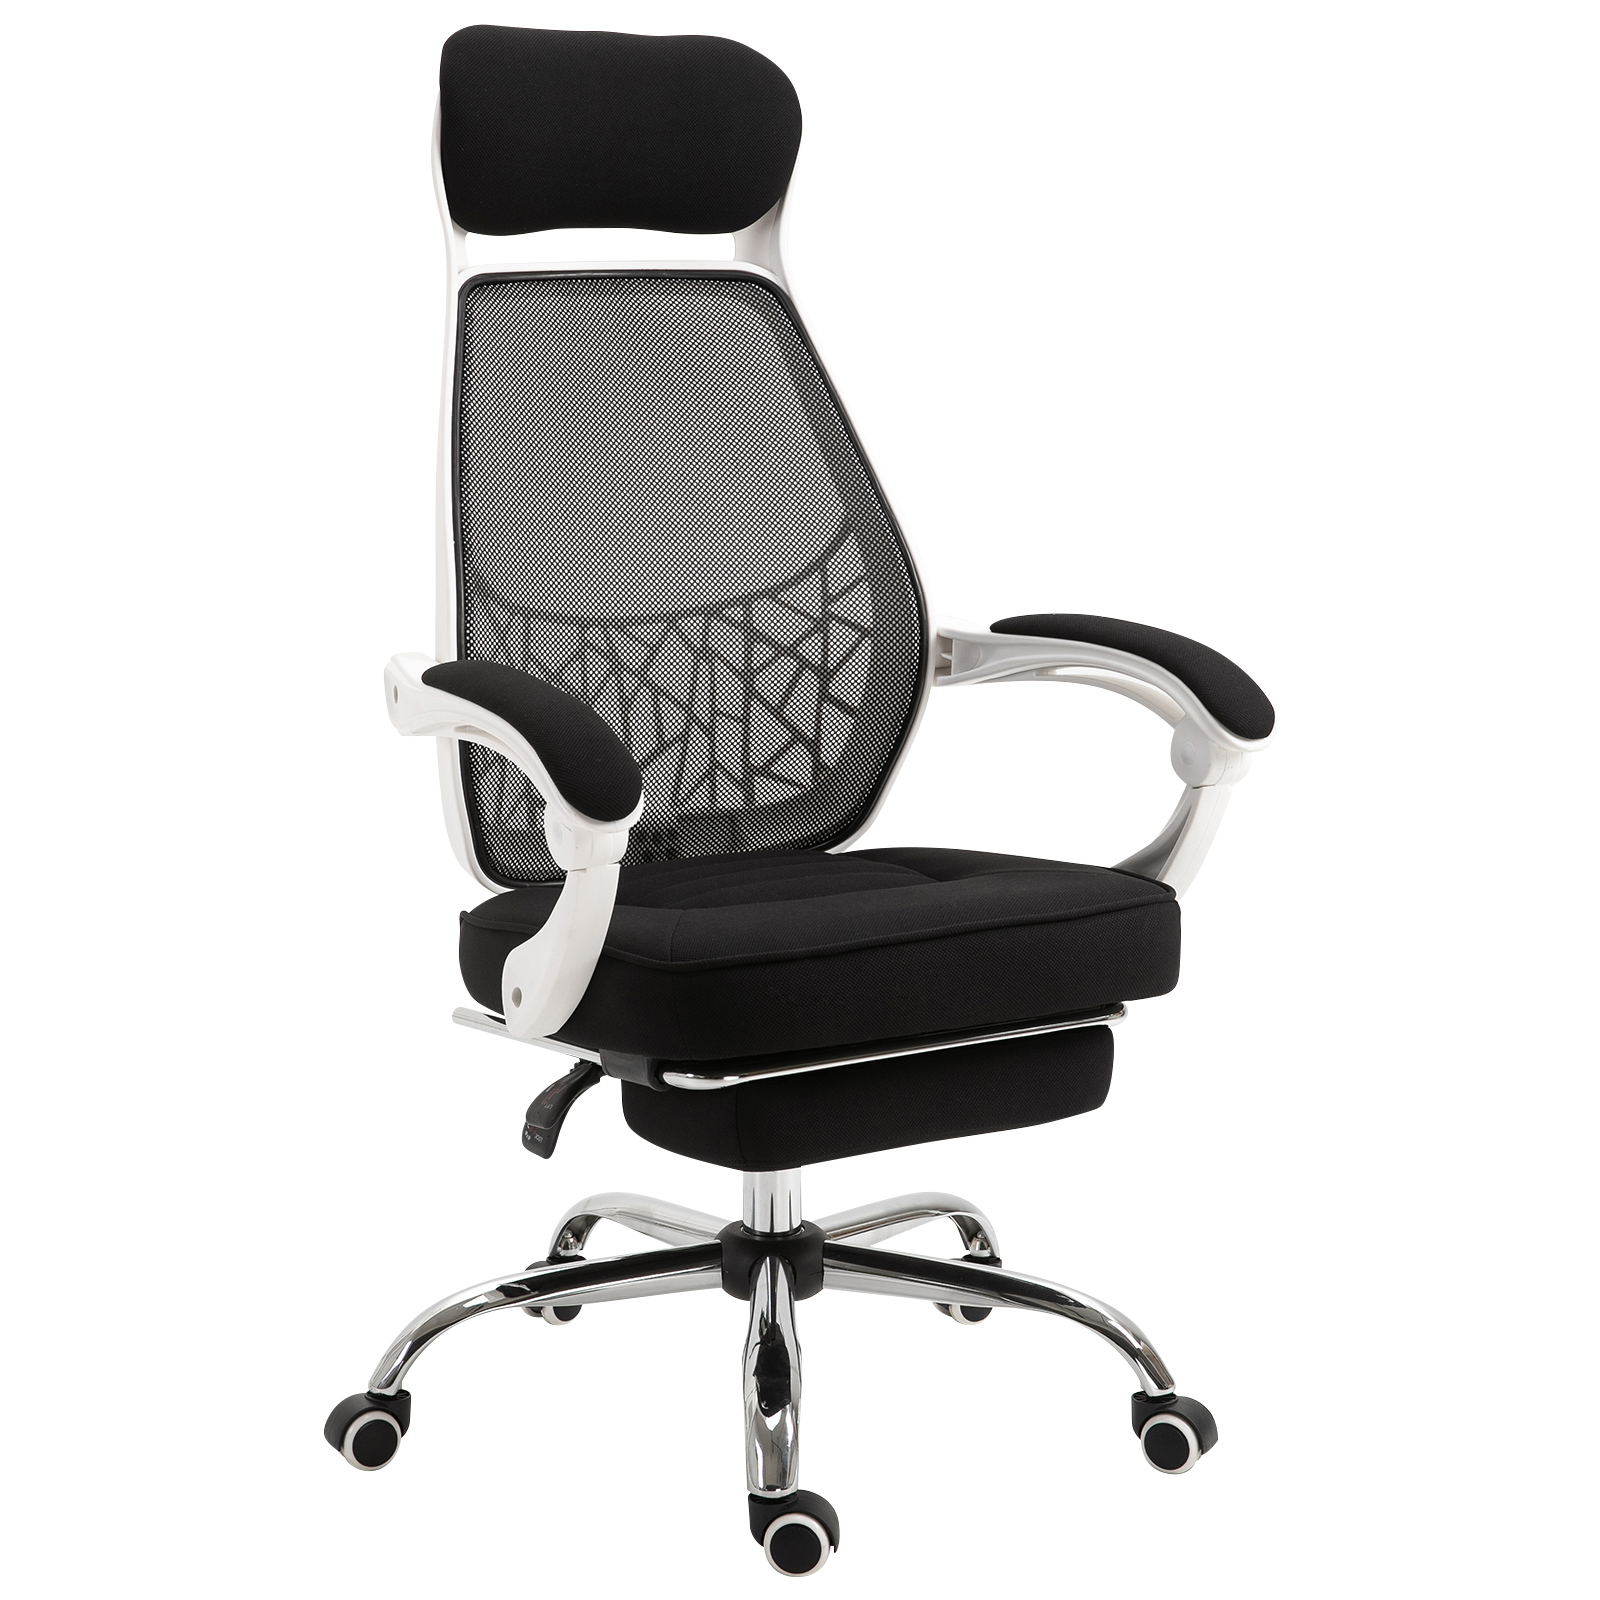 Vinsetto 360° Swivel High Back Office Chair Adjustable